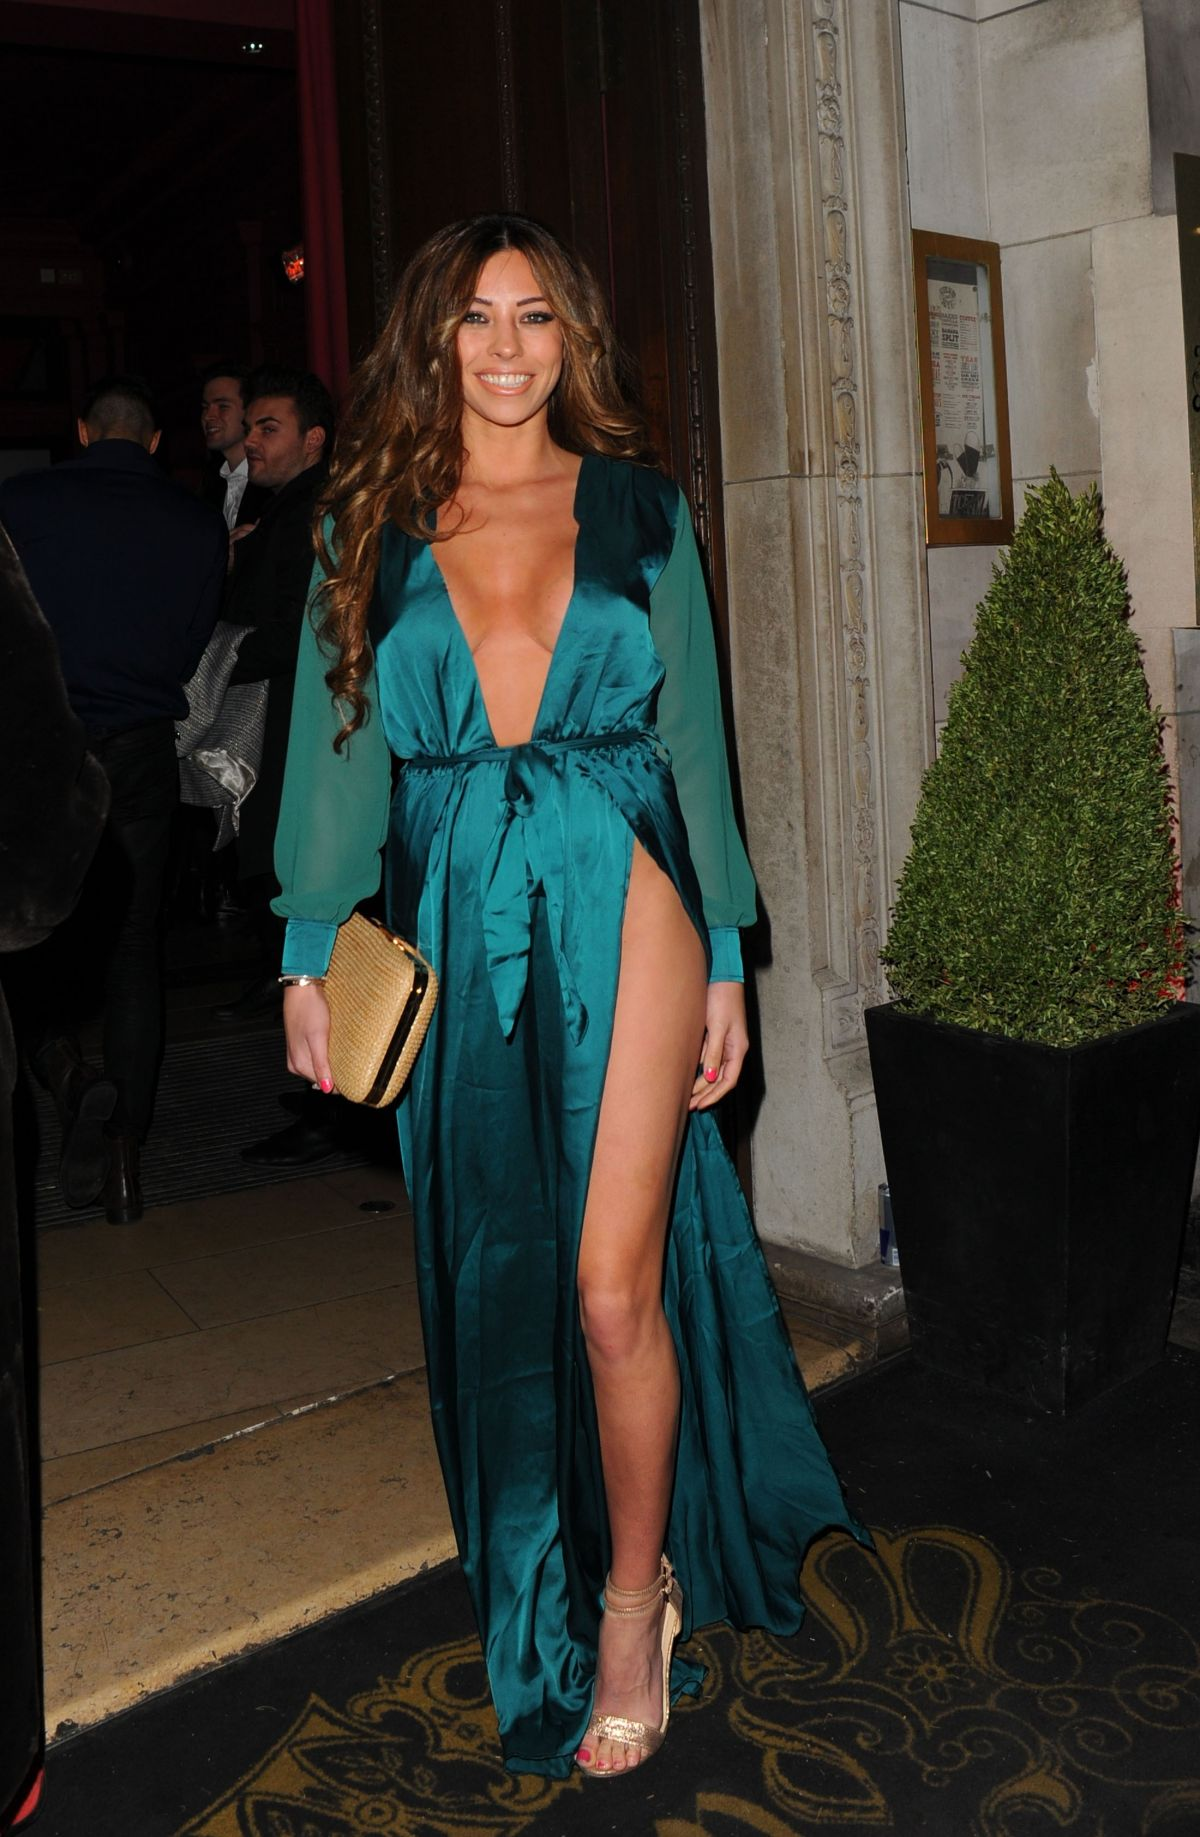 Paparazzi Pascal Craymer nudes (74 photo), Topless, Fappening, Instagram, in bikini 2015